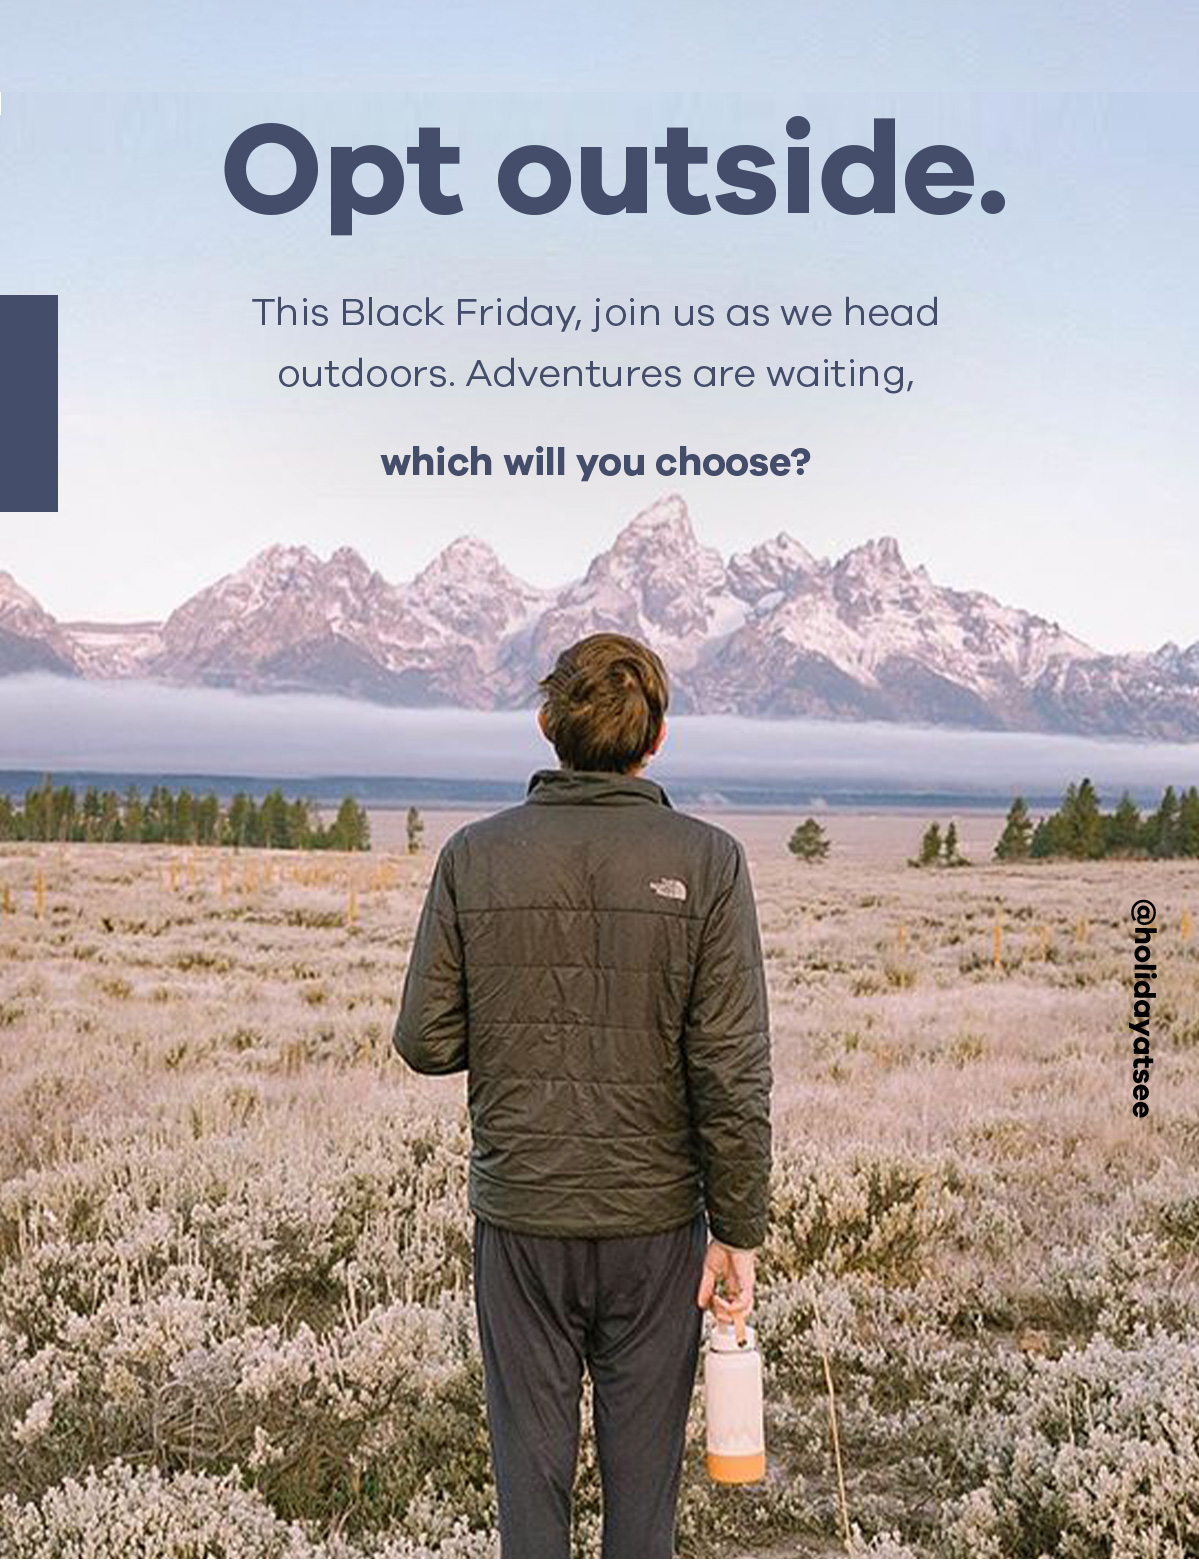 Opt outside. This Black Friday, join us as we head outdoors. Adventures are waiting, which will you choose?